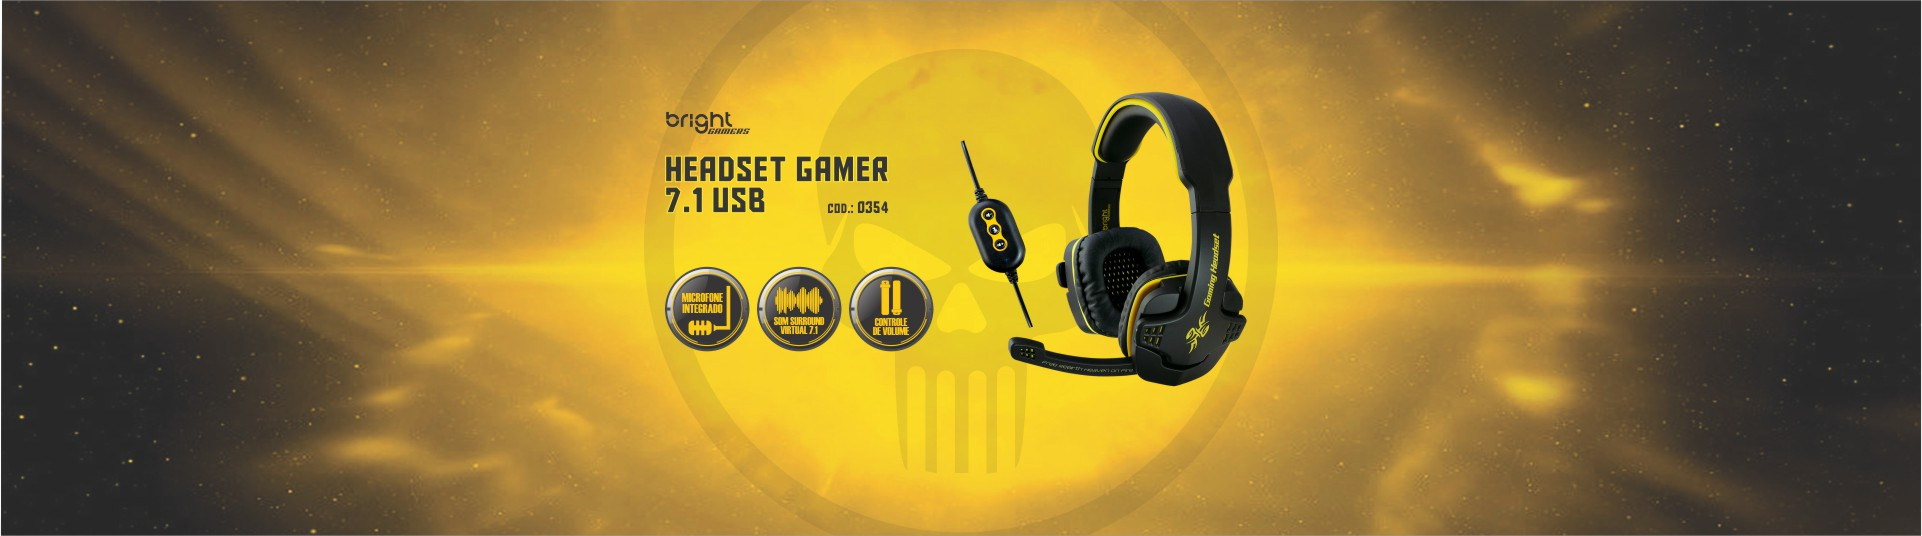 banner_BRIGHT_GAMERS_0354